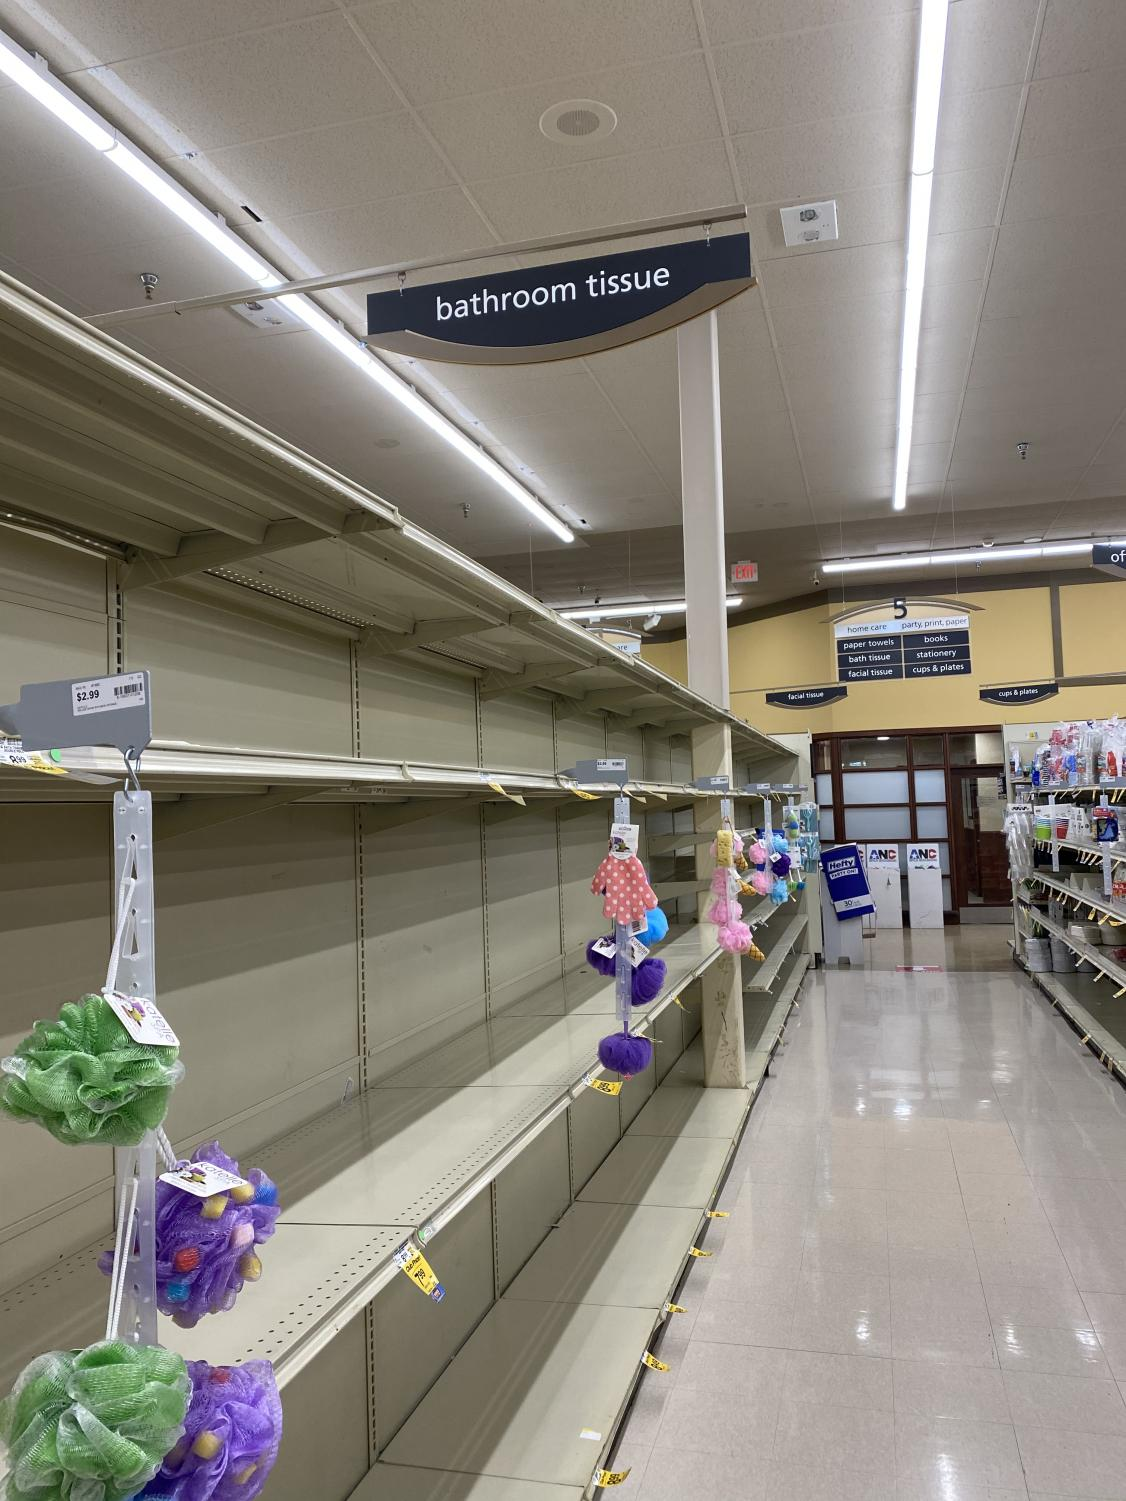 Safeway+Grocery+Store+Has+Trouble+Keeping+Shelves+Full